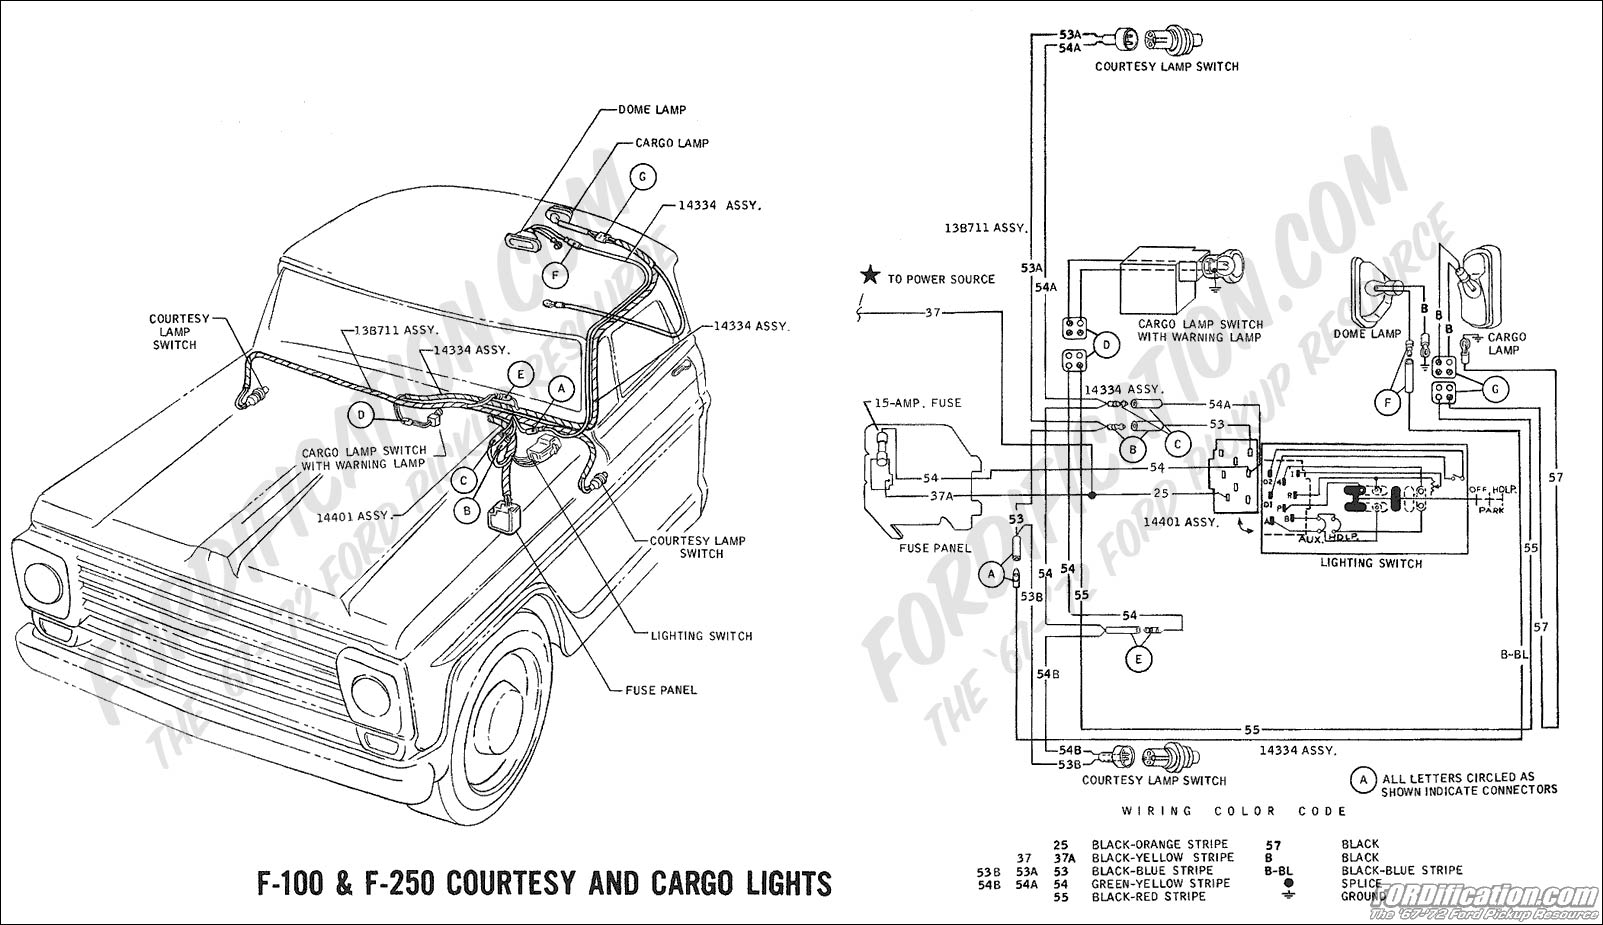 Ford F Wiring Schematic on ford f-350 pickup, ford excursion wiring schematic, 2001 ford wiring schematic, ford ranger wiring schematic, ford f800 wiring schematic, ford e-450 wiring schematic, ford e-350 van wiring schematic, ford escape wiring schematic, ford f150 wiring schematic, ford super duty wiring schematic, ford expedition wiring schematic, ford f550 wiring schematic, ford flex wiring schematic, ford f53 wiring schematic, ford radio wiring schematic, ford f-350 lifted trucks, ford f250 wiring schematic, ford f-series dually diesel, ford f-350 regular cab, ford 7 pin plug schematic,